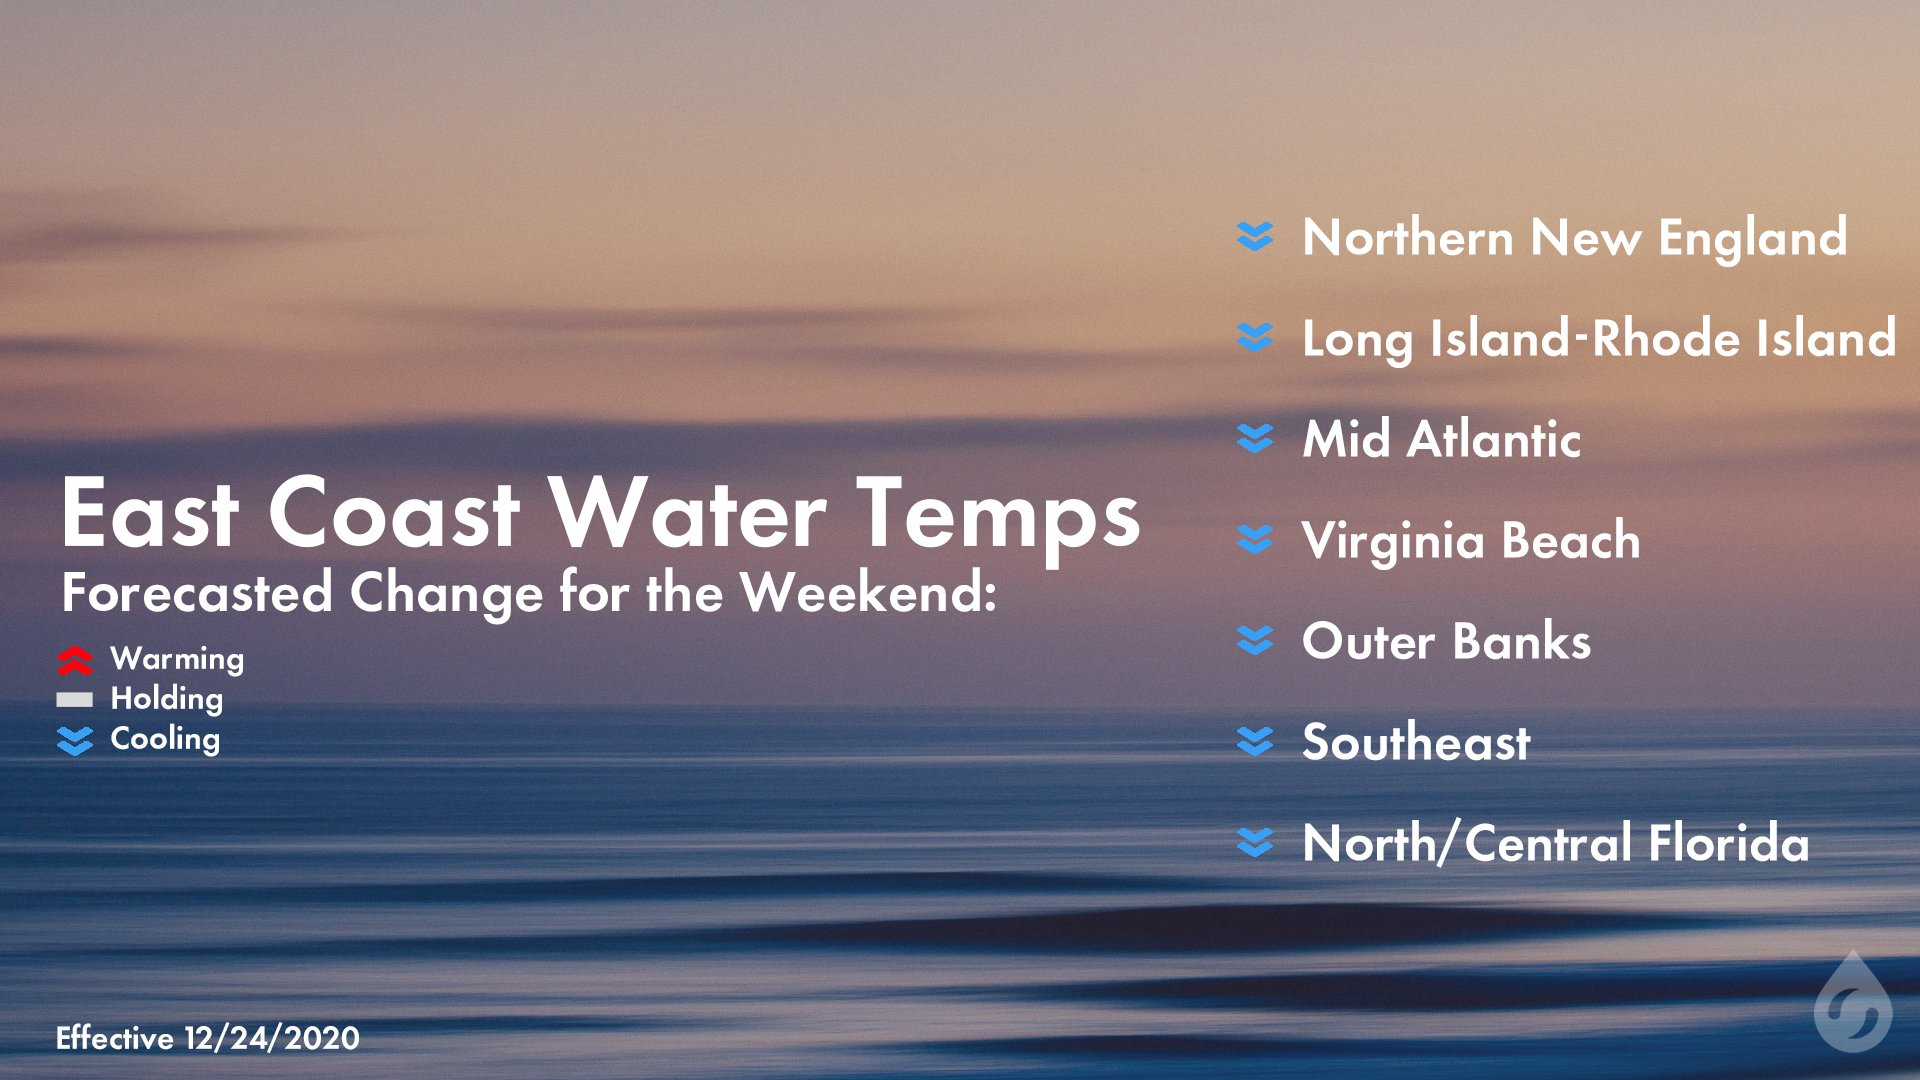 East Coast Water Temp Forecast Updated